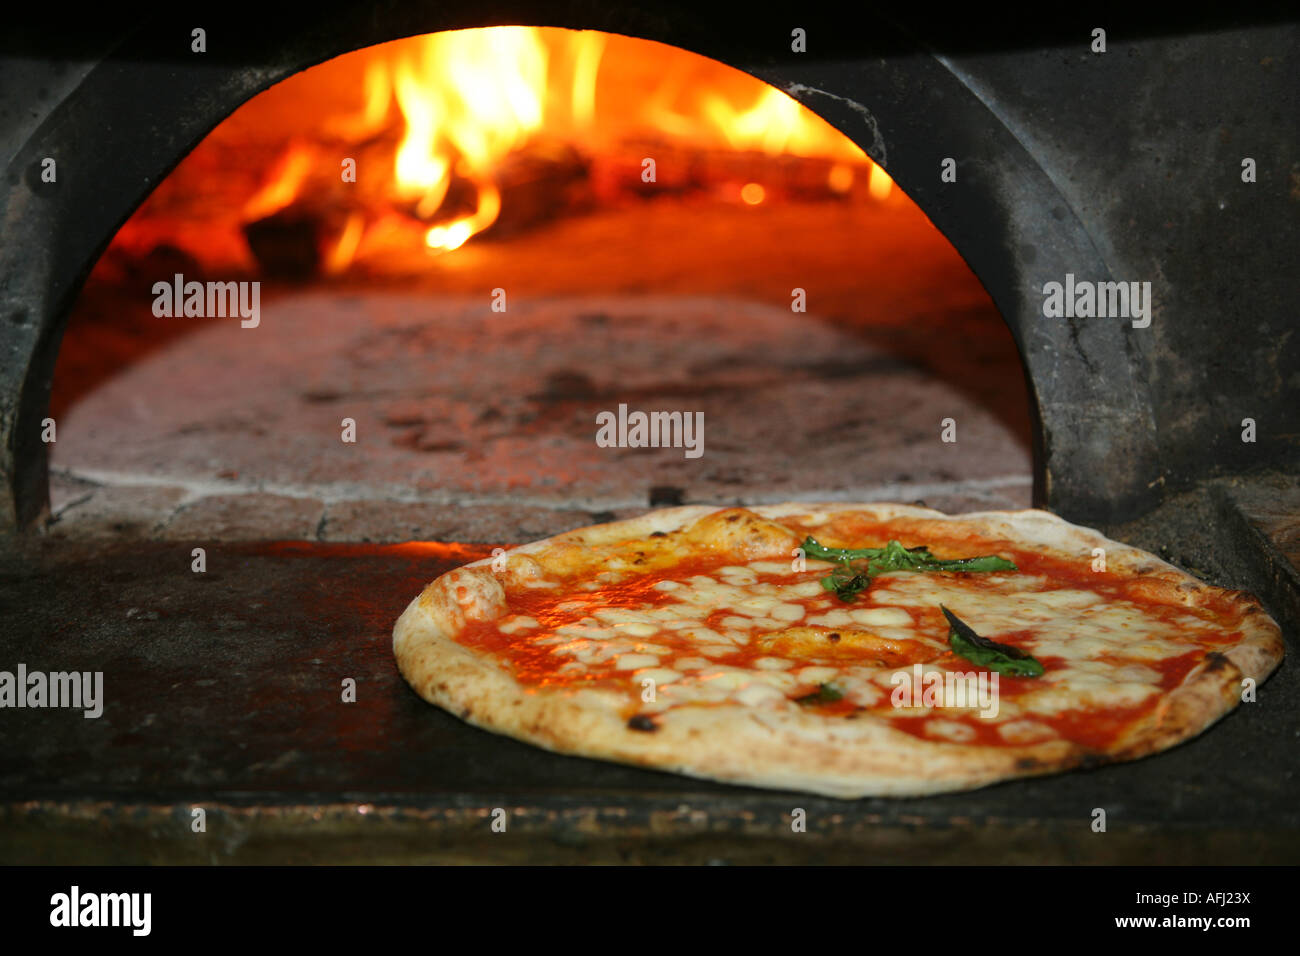 Just cooked Pizza from a real fire oven in Naples Italy Stock Photo